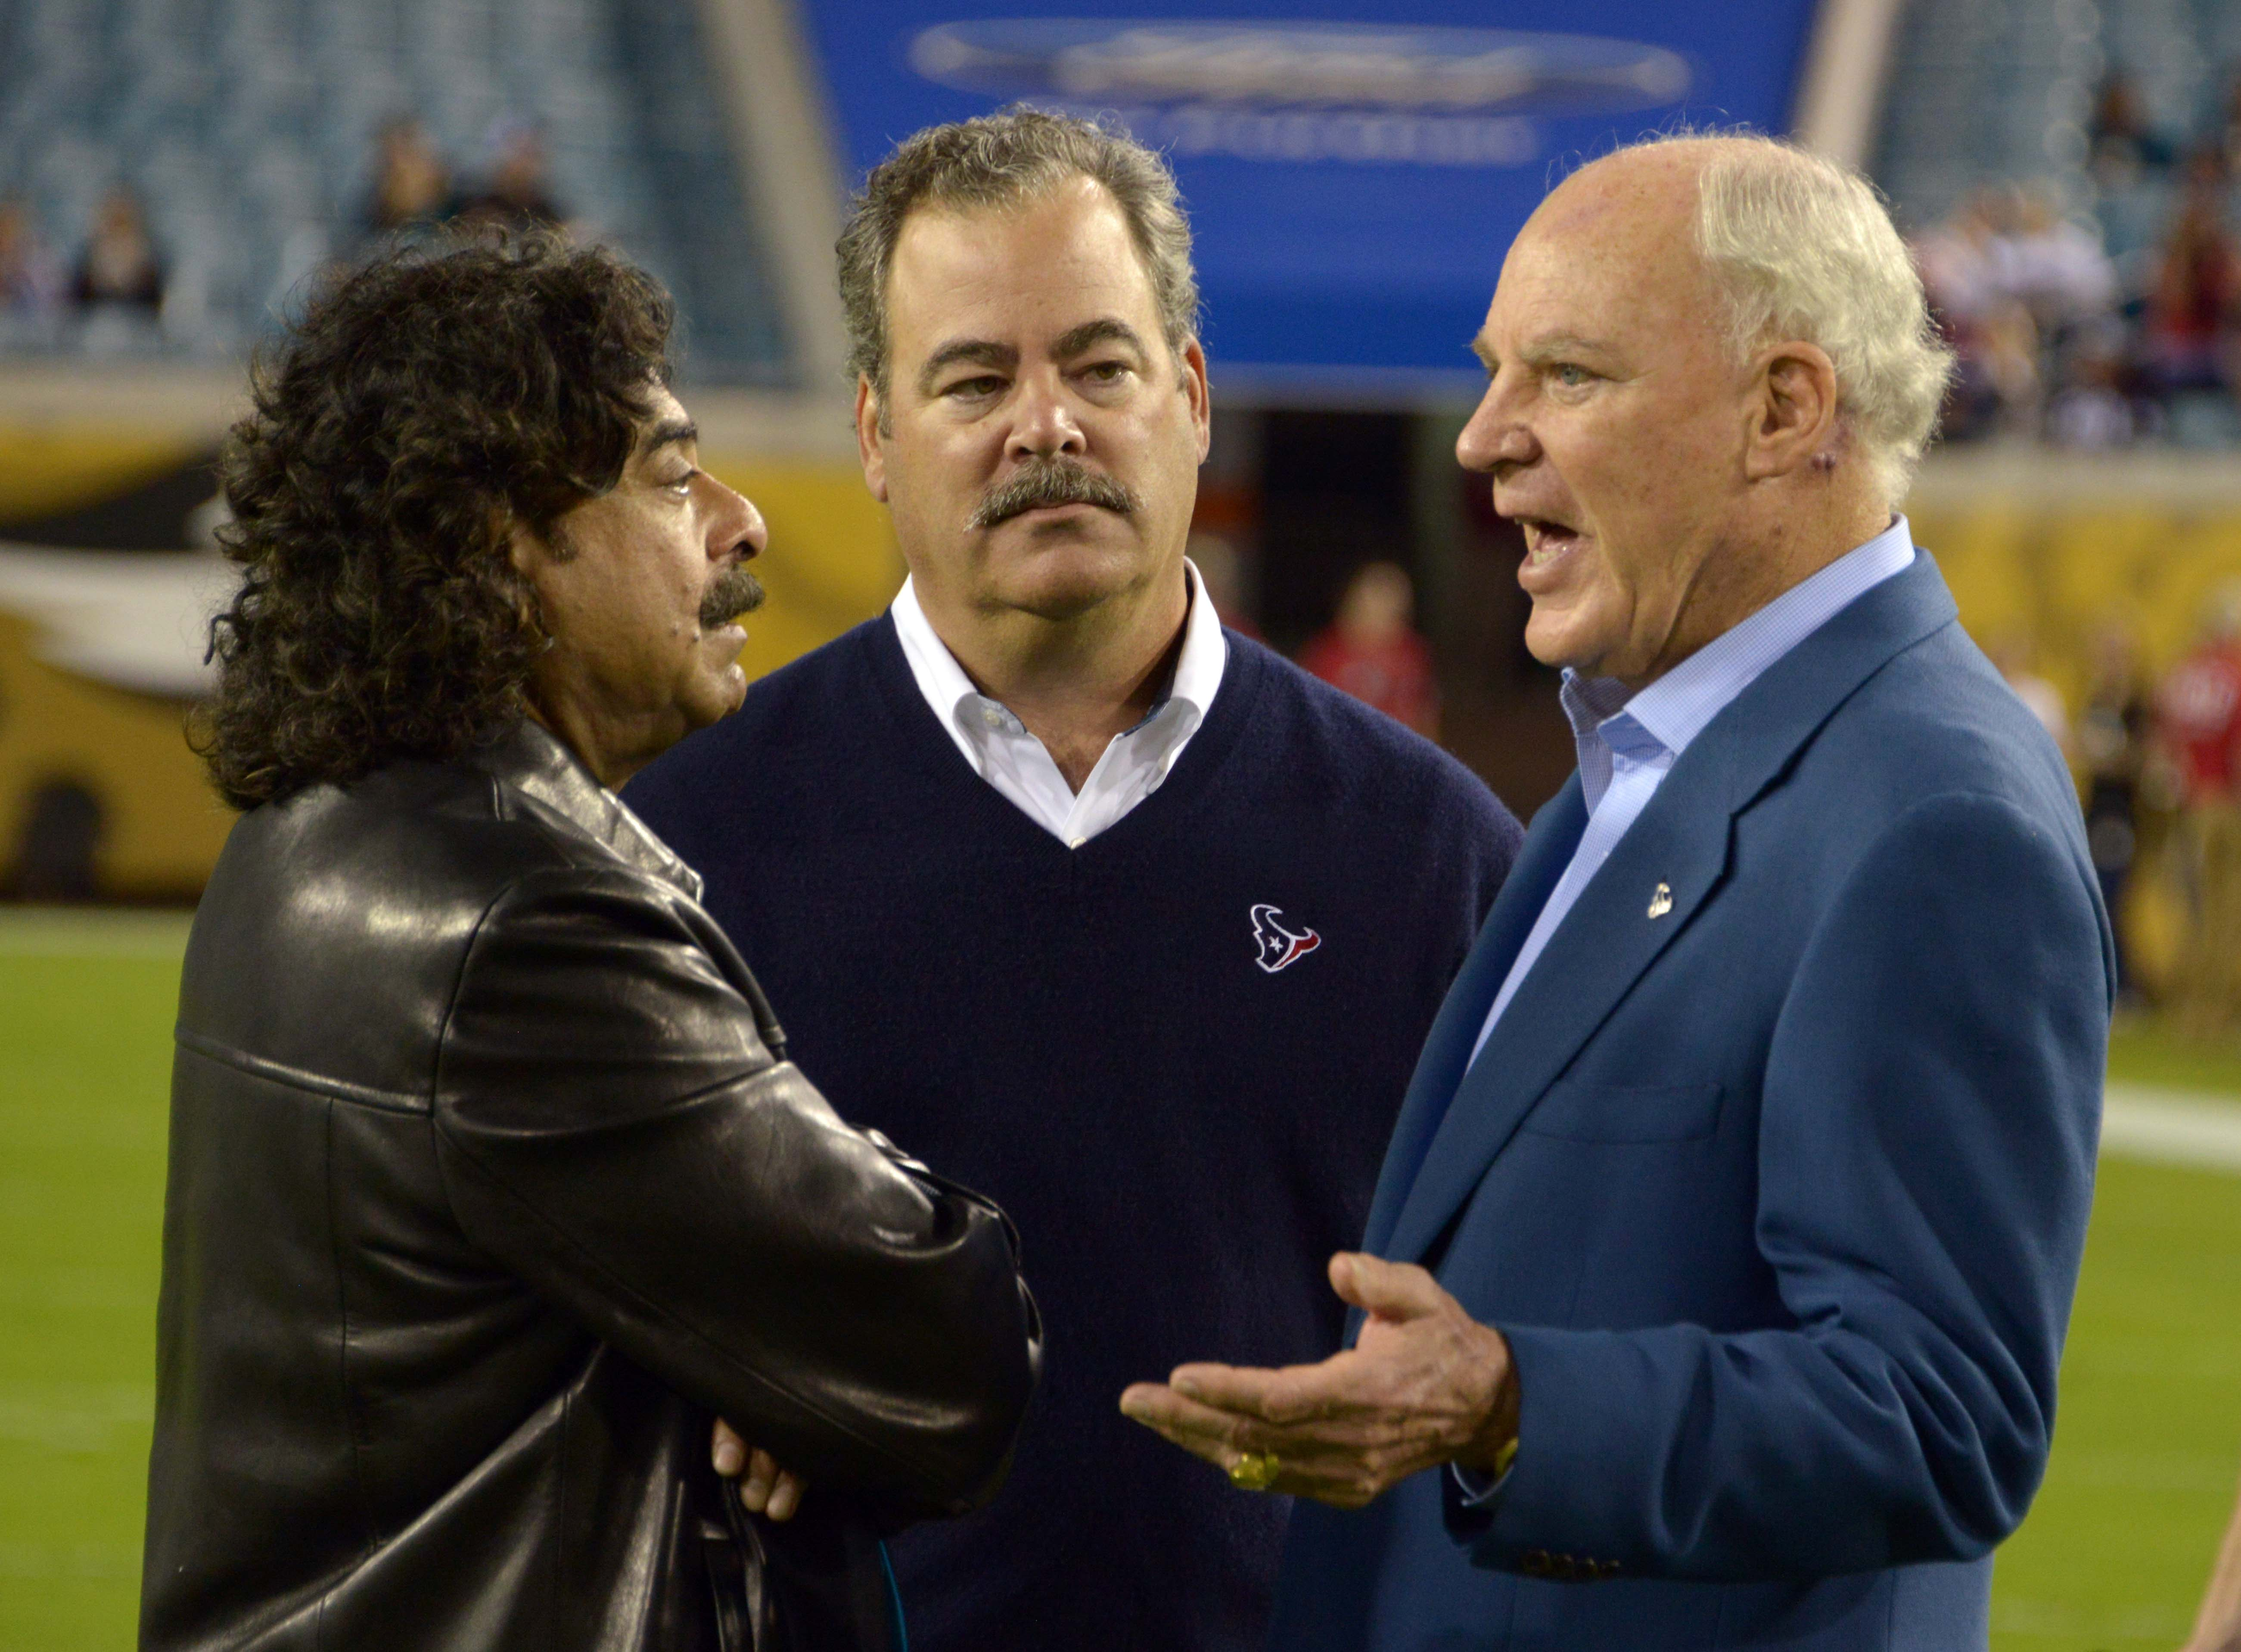 One of these owners has seen his team turn around. The other has the most magnificent mustache in the NFL.